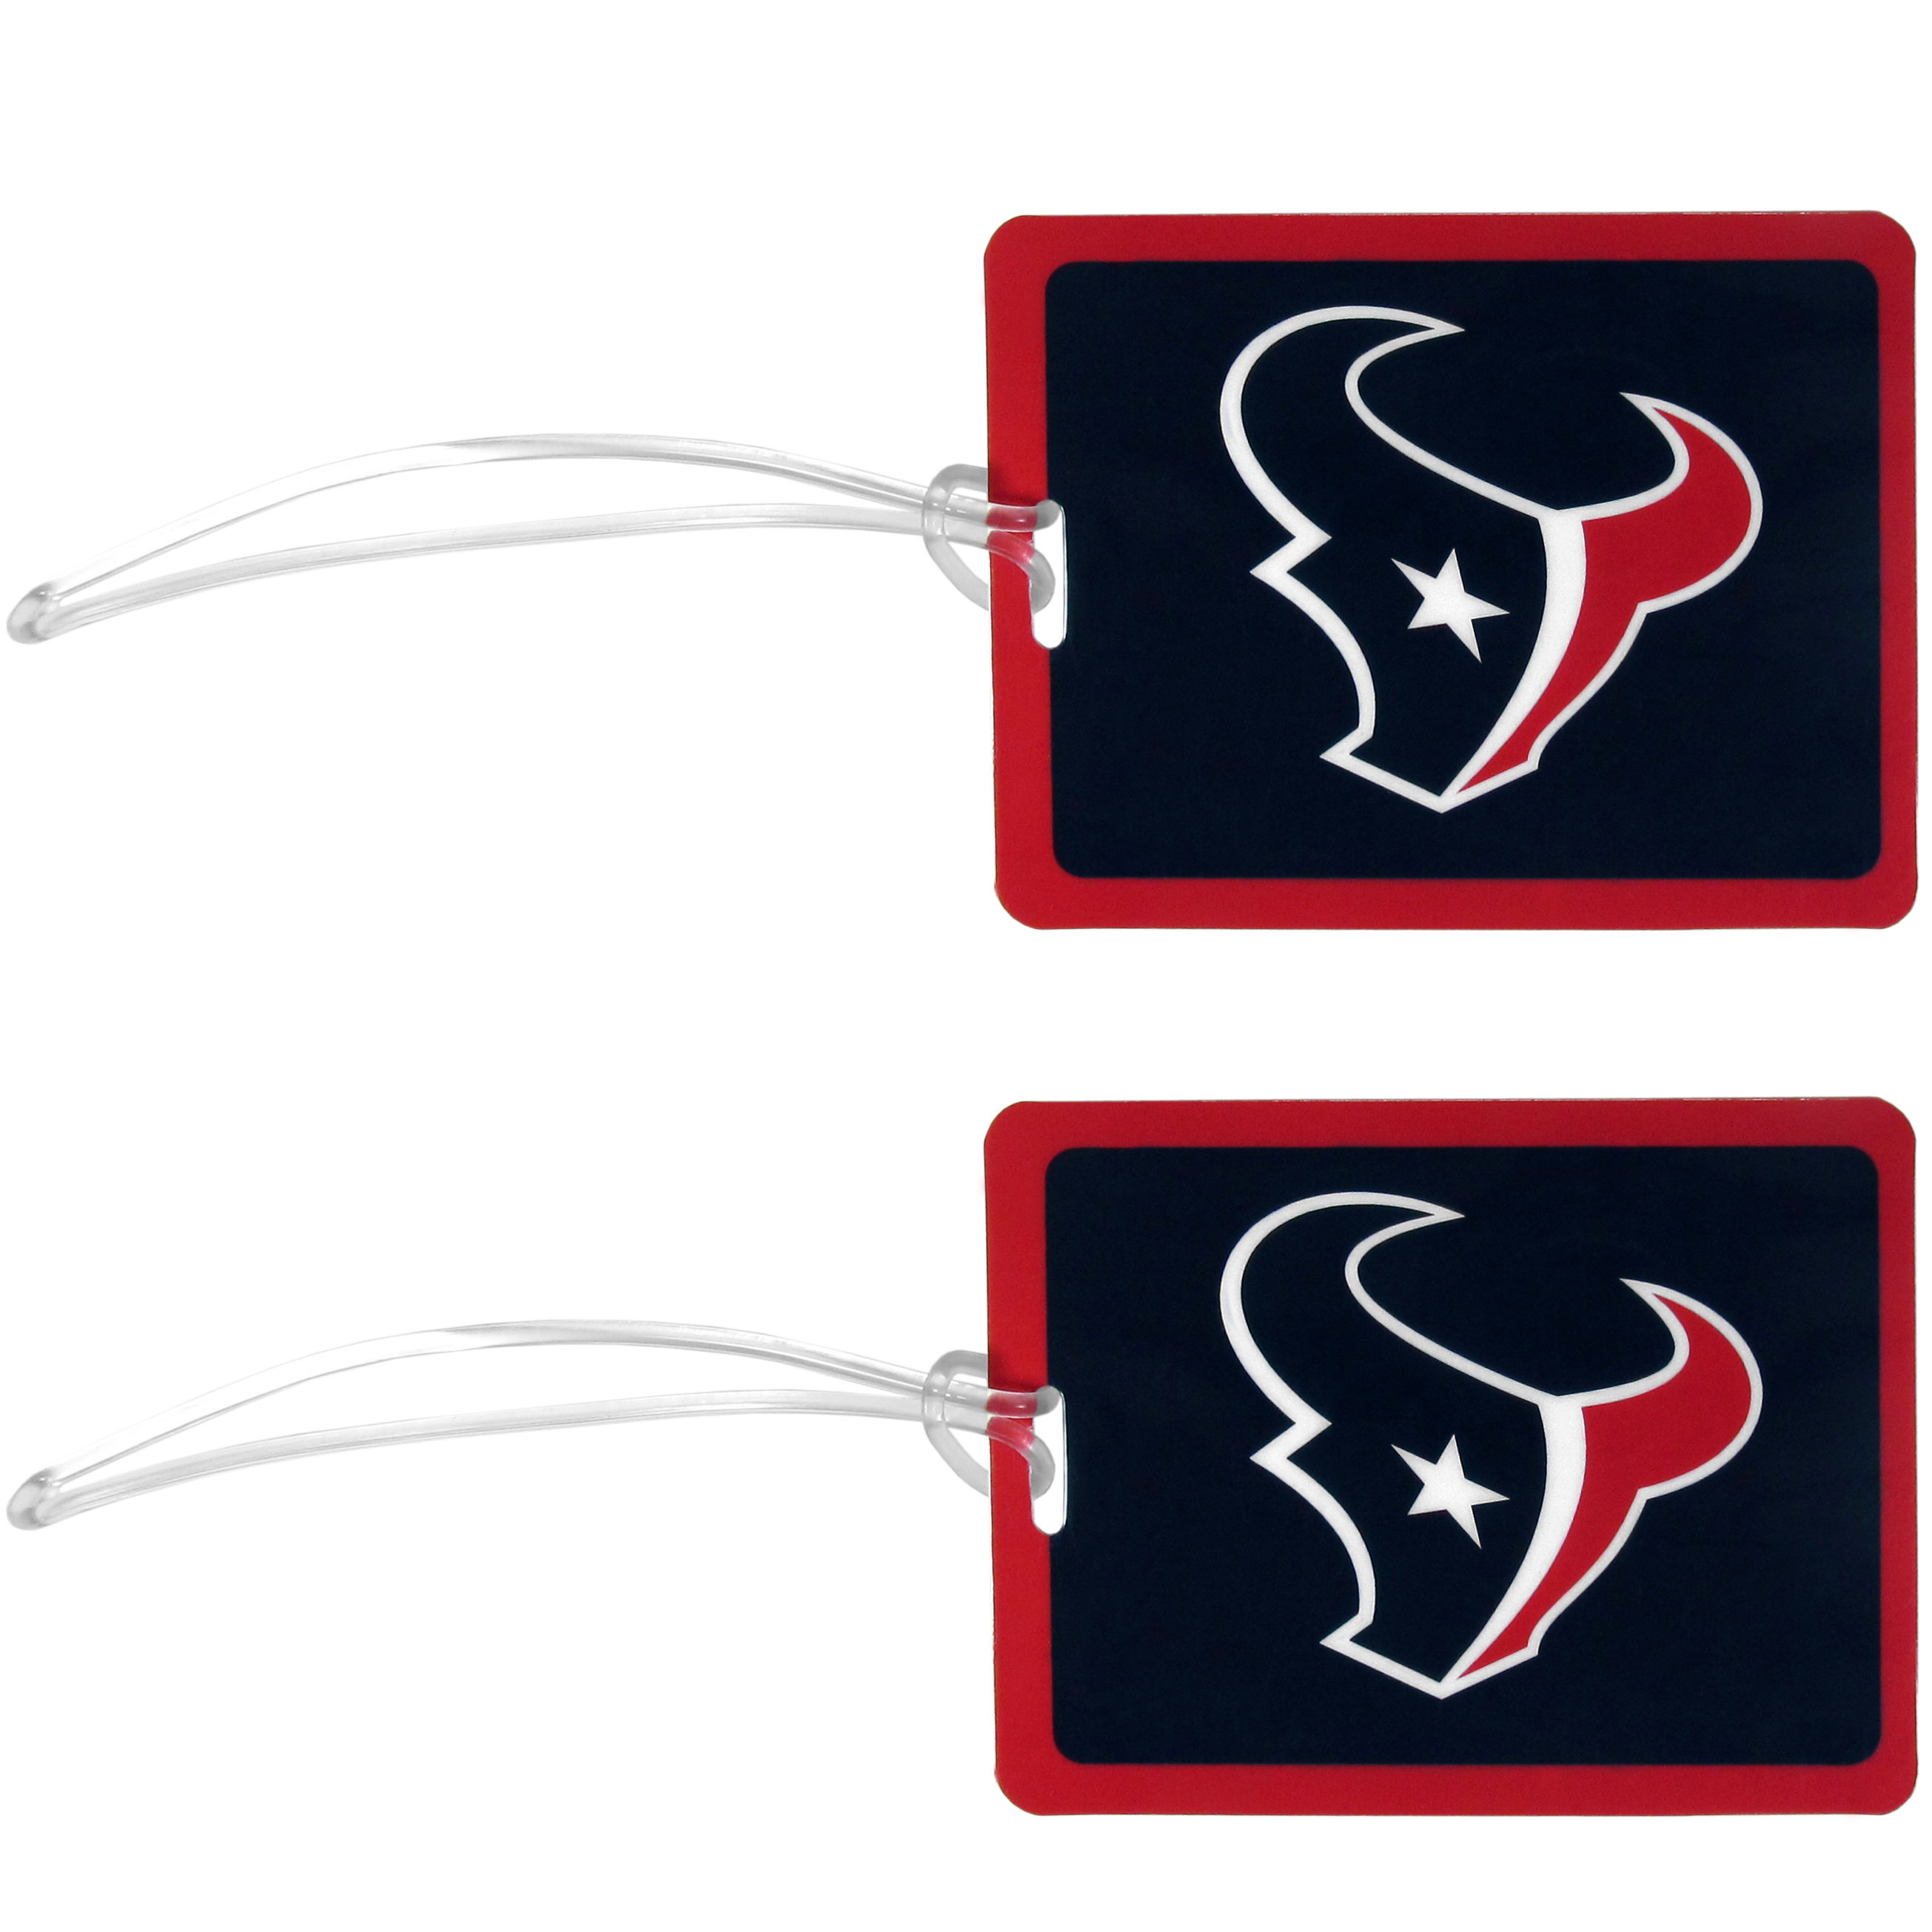 Houston Texans Vinyl Luggage Tag, 2pk - Tired of trying to spot your suitcase or bag in a sea of luggage? Try our large and colorful Houston Texans luggage tags. The tag is 4x3 inches and has a 5 inch cord to attach it easily to your bags, backpacks or luggage. The front of the tag features the team logo in a bright, team colored background and you can write you name, address and phone number on the back of the tag.